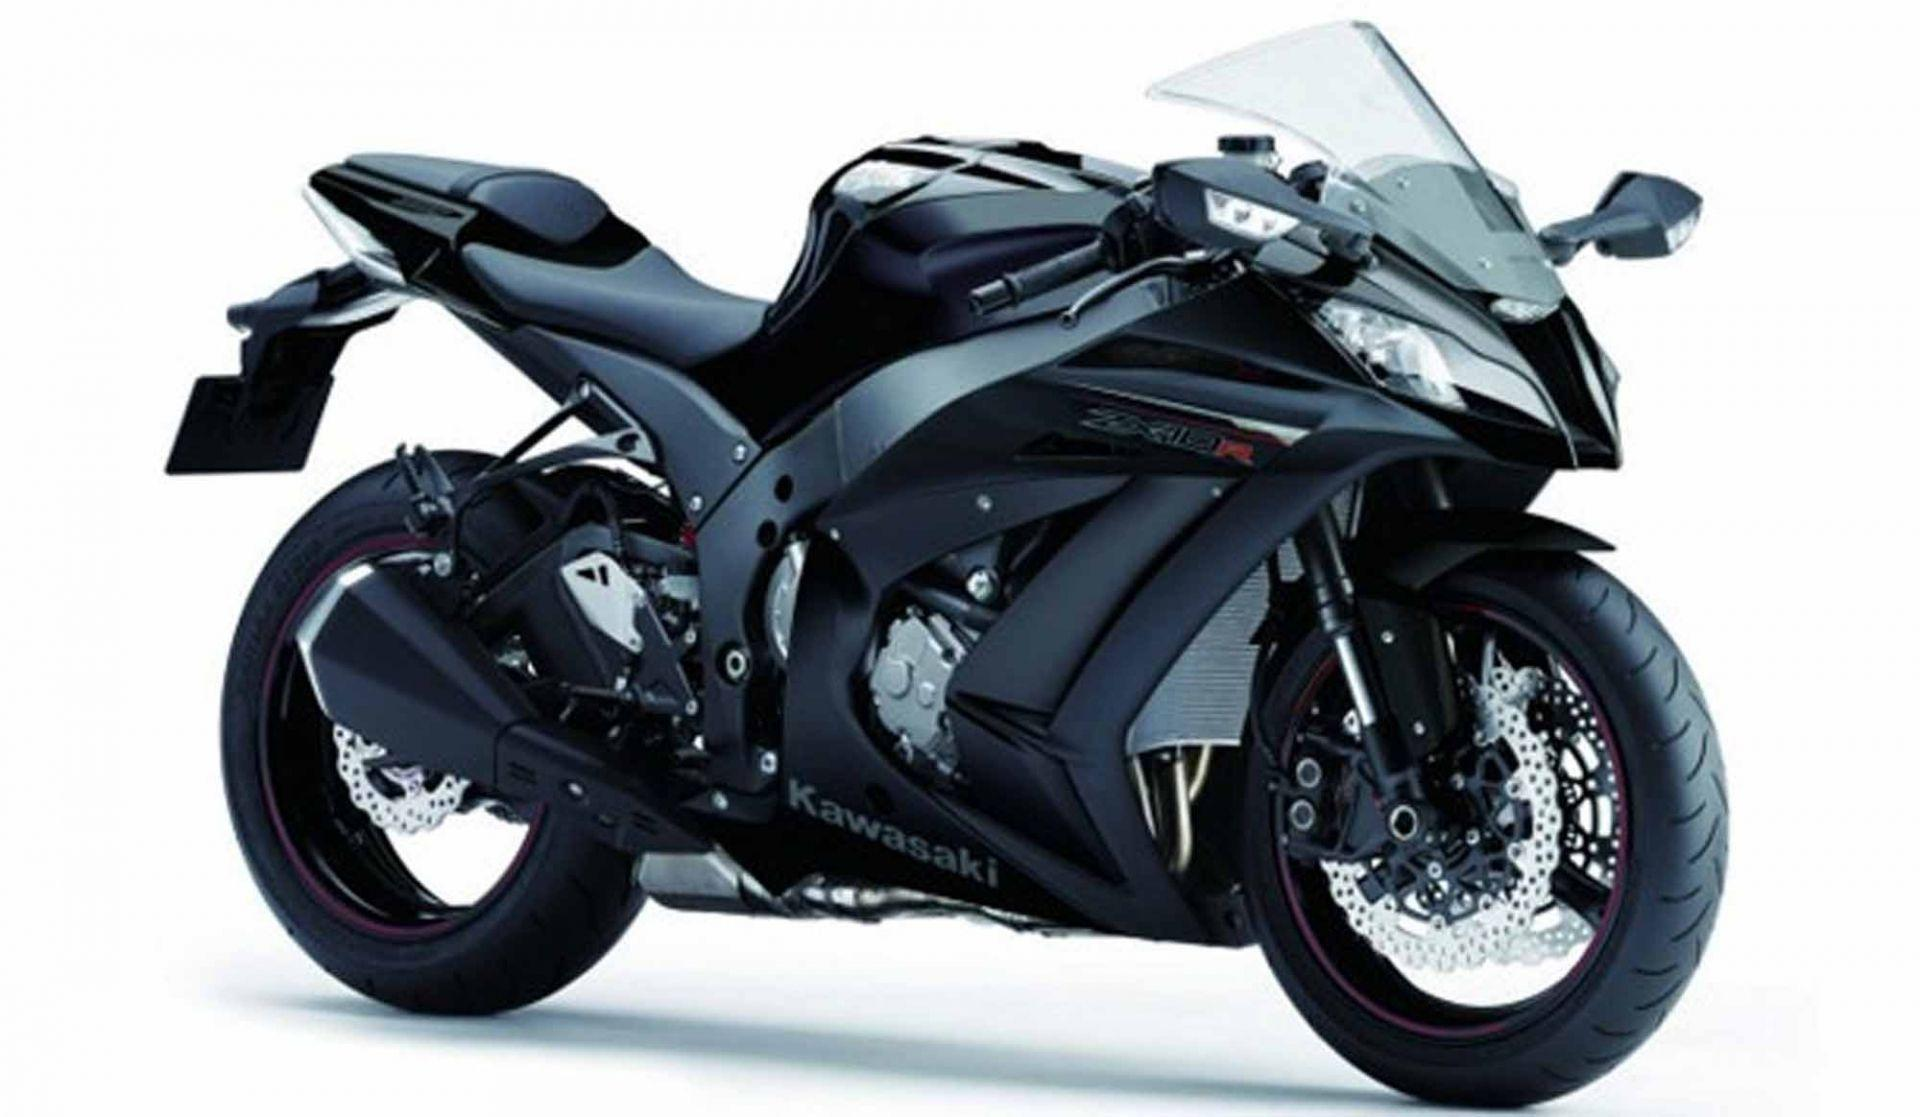 the kawasaki ninja 250r - photo #12